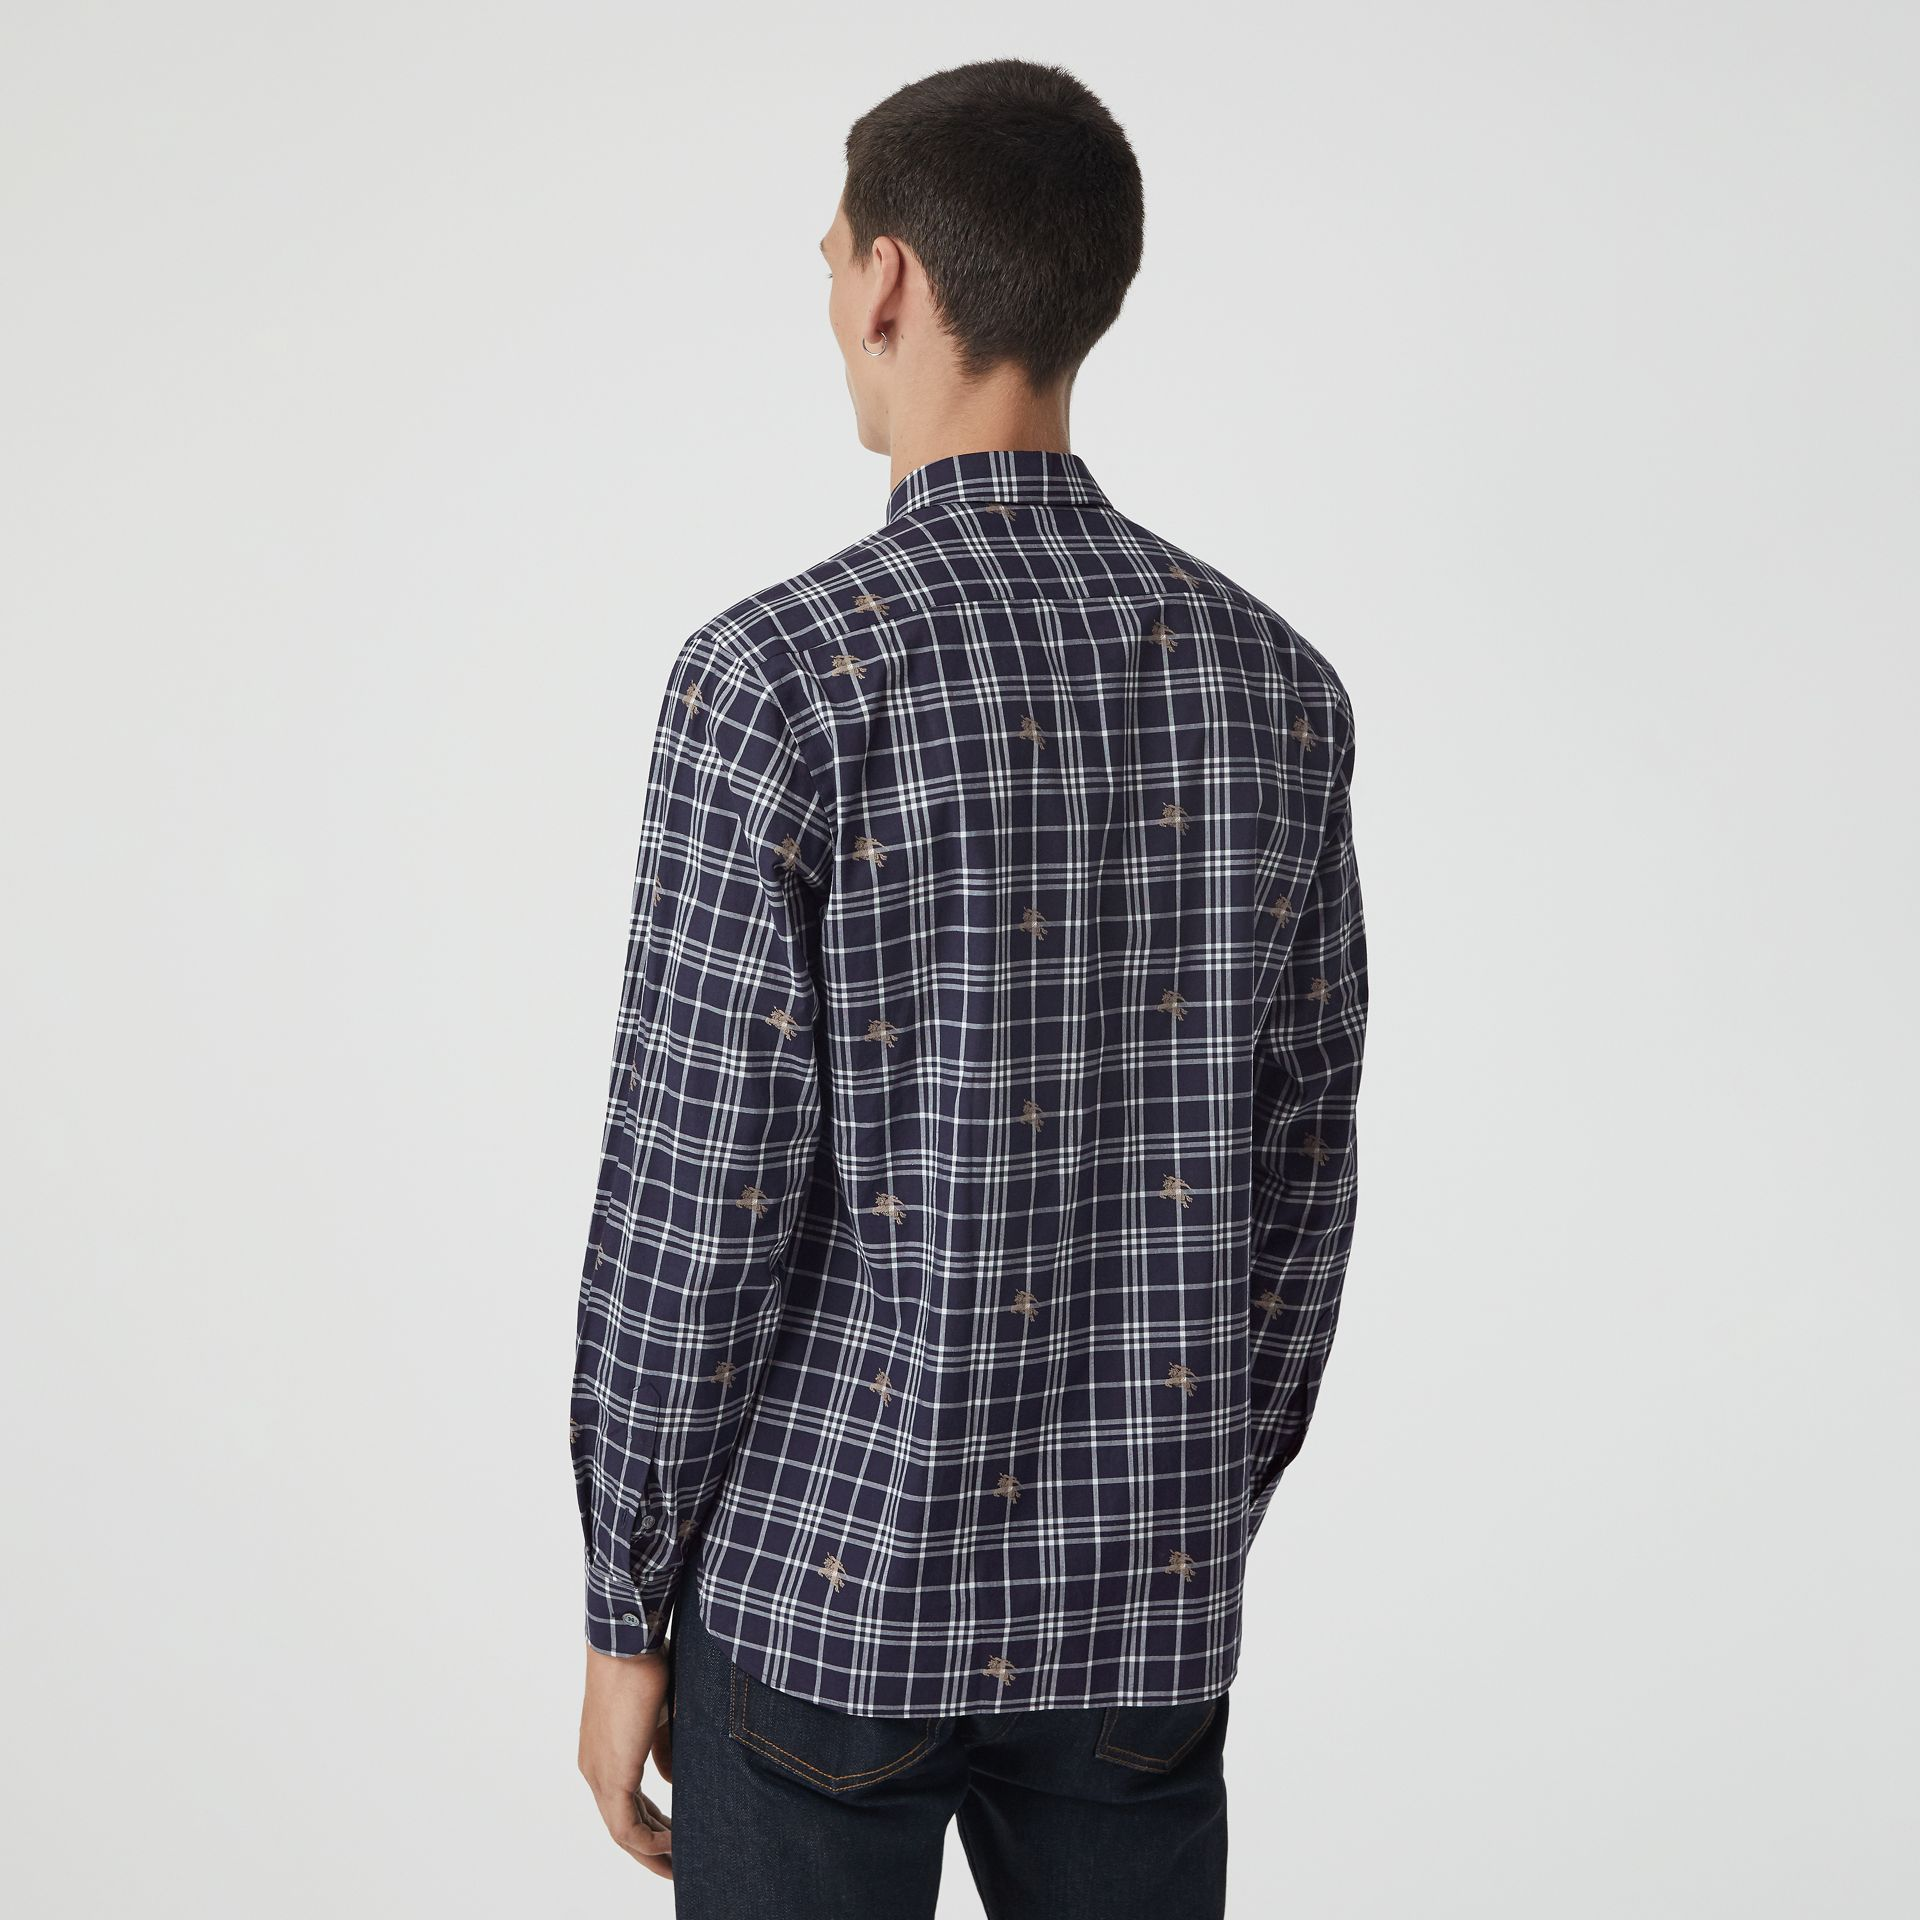 Equestrian Knight Check Cotton Shirt in Navy - Men | Burberry Canada - gallery image 2